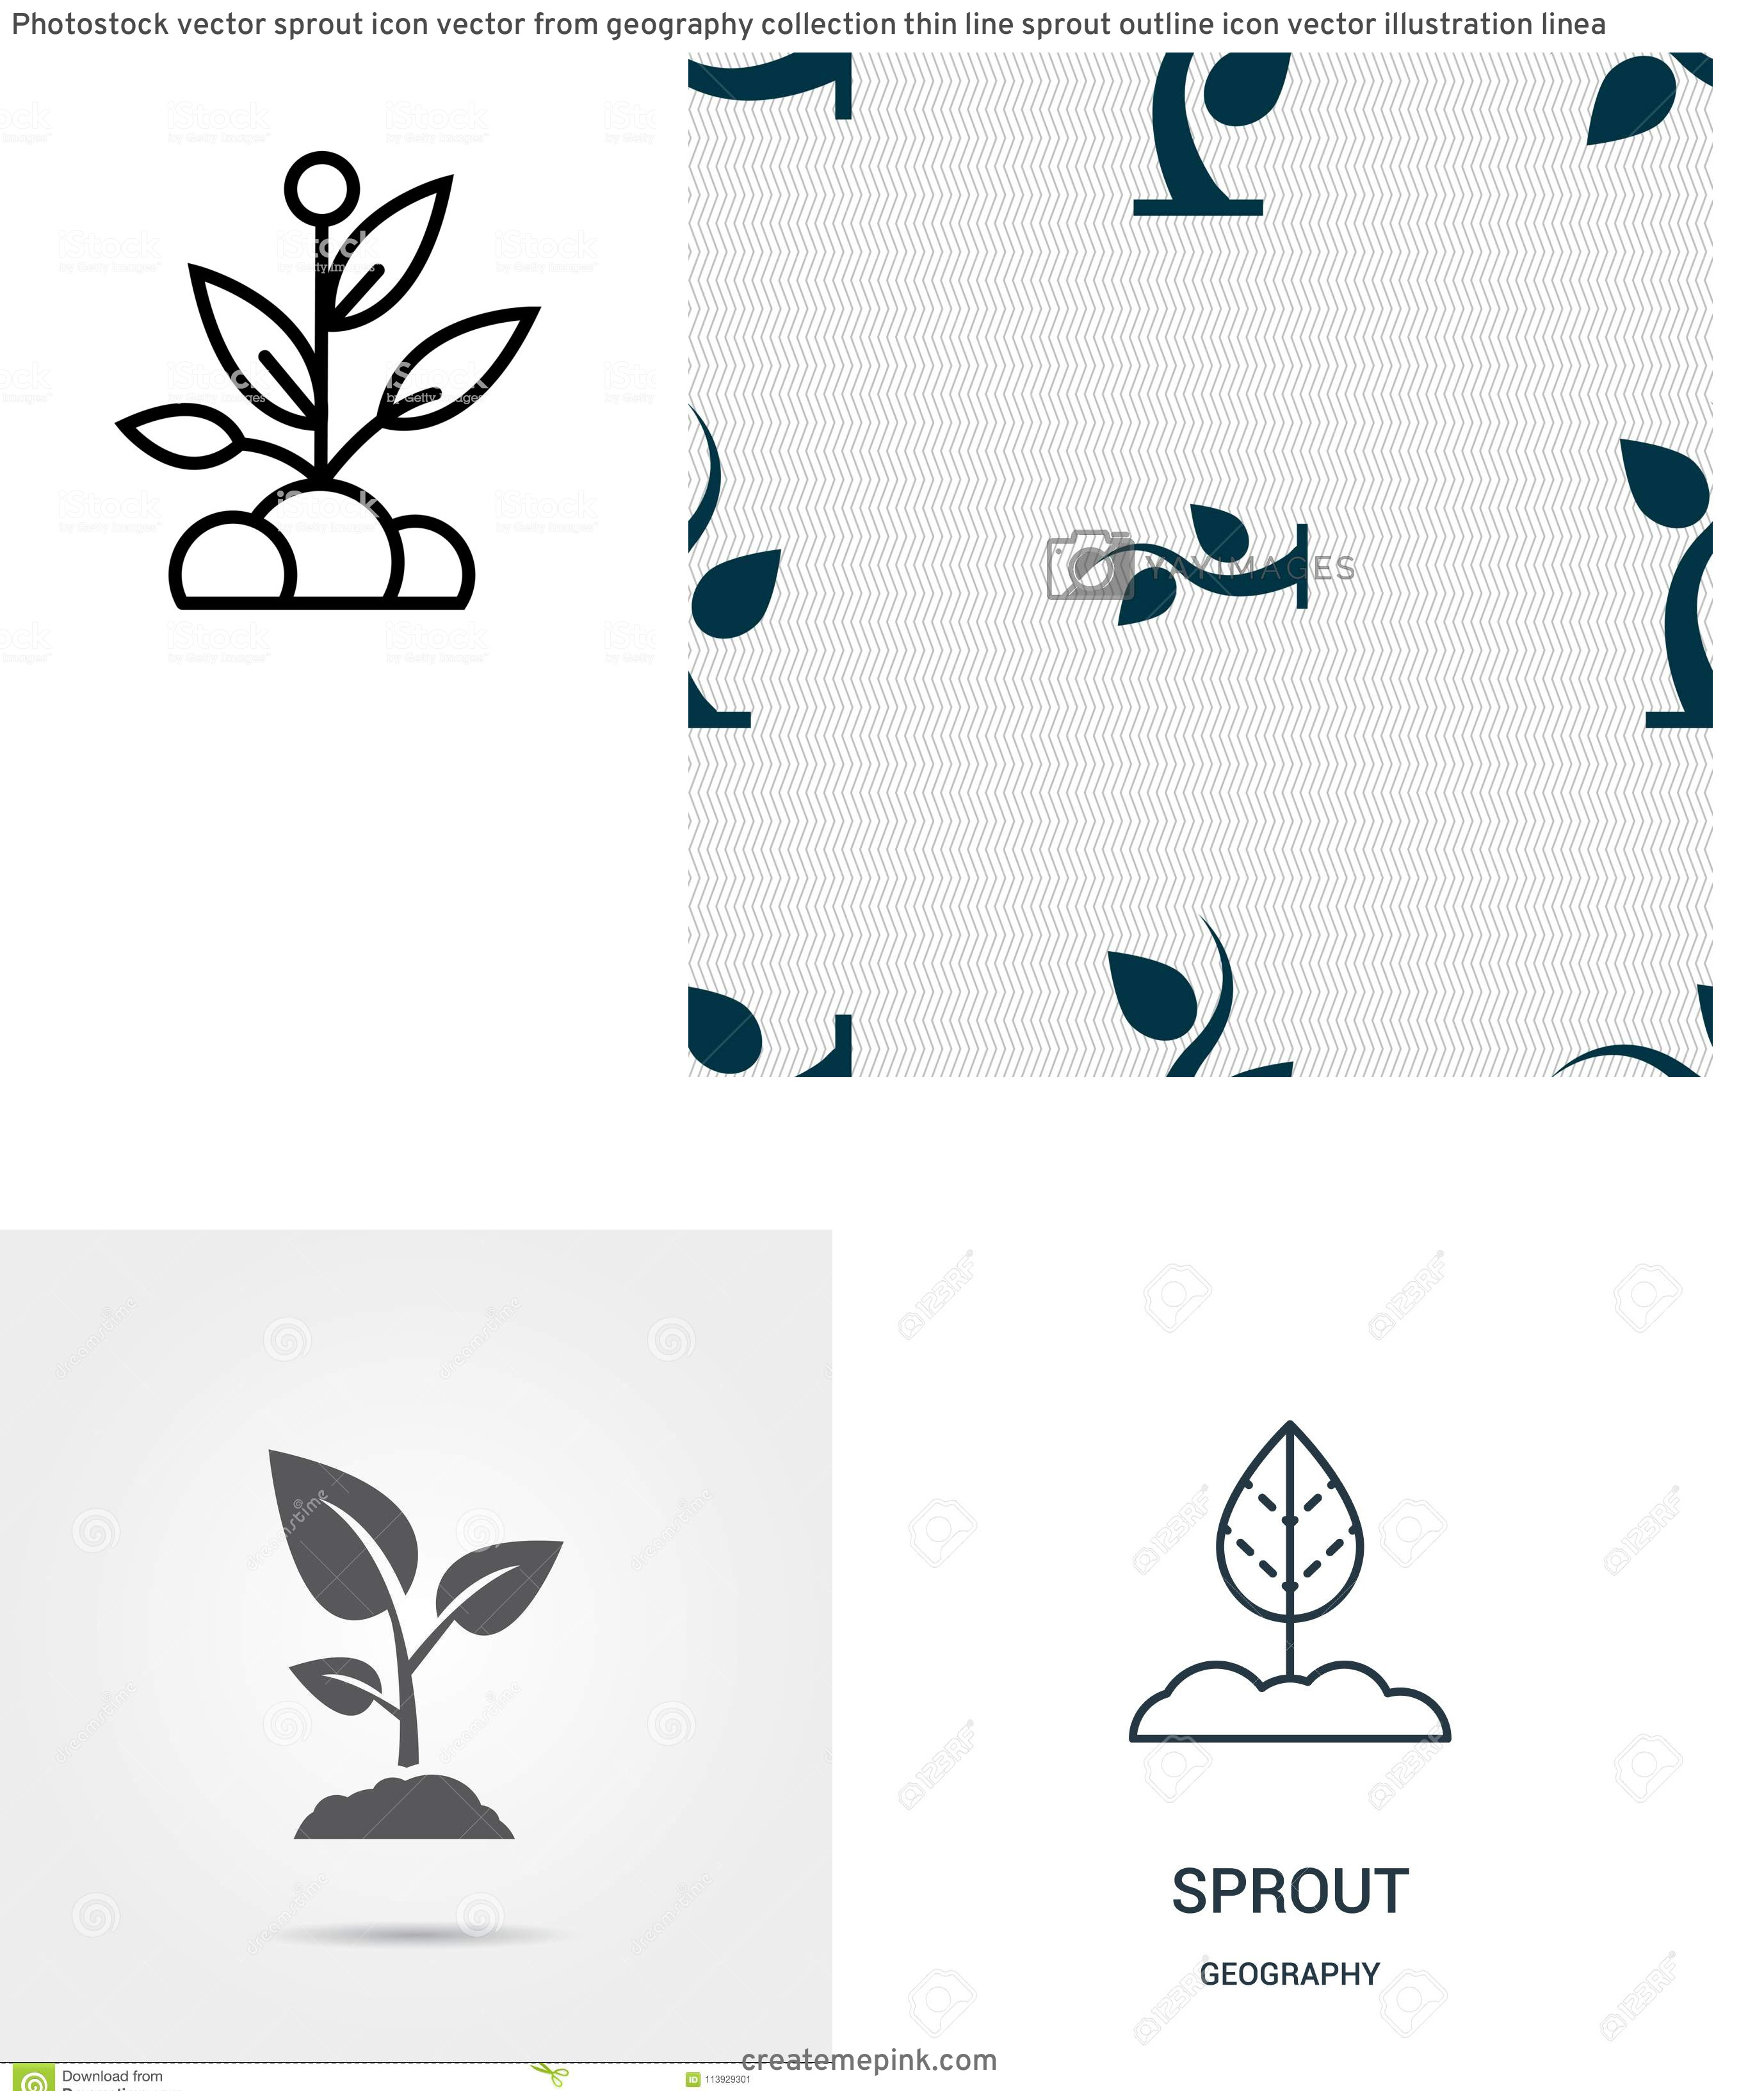 Sprout Icon Vector: Photostock Vector Sprout Icon Vector From Geography Collection Thin Line Sprout Outline Icon Vector Illustration Linea